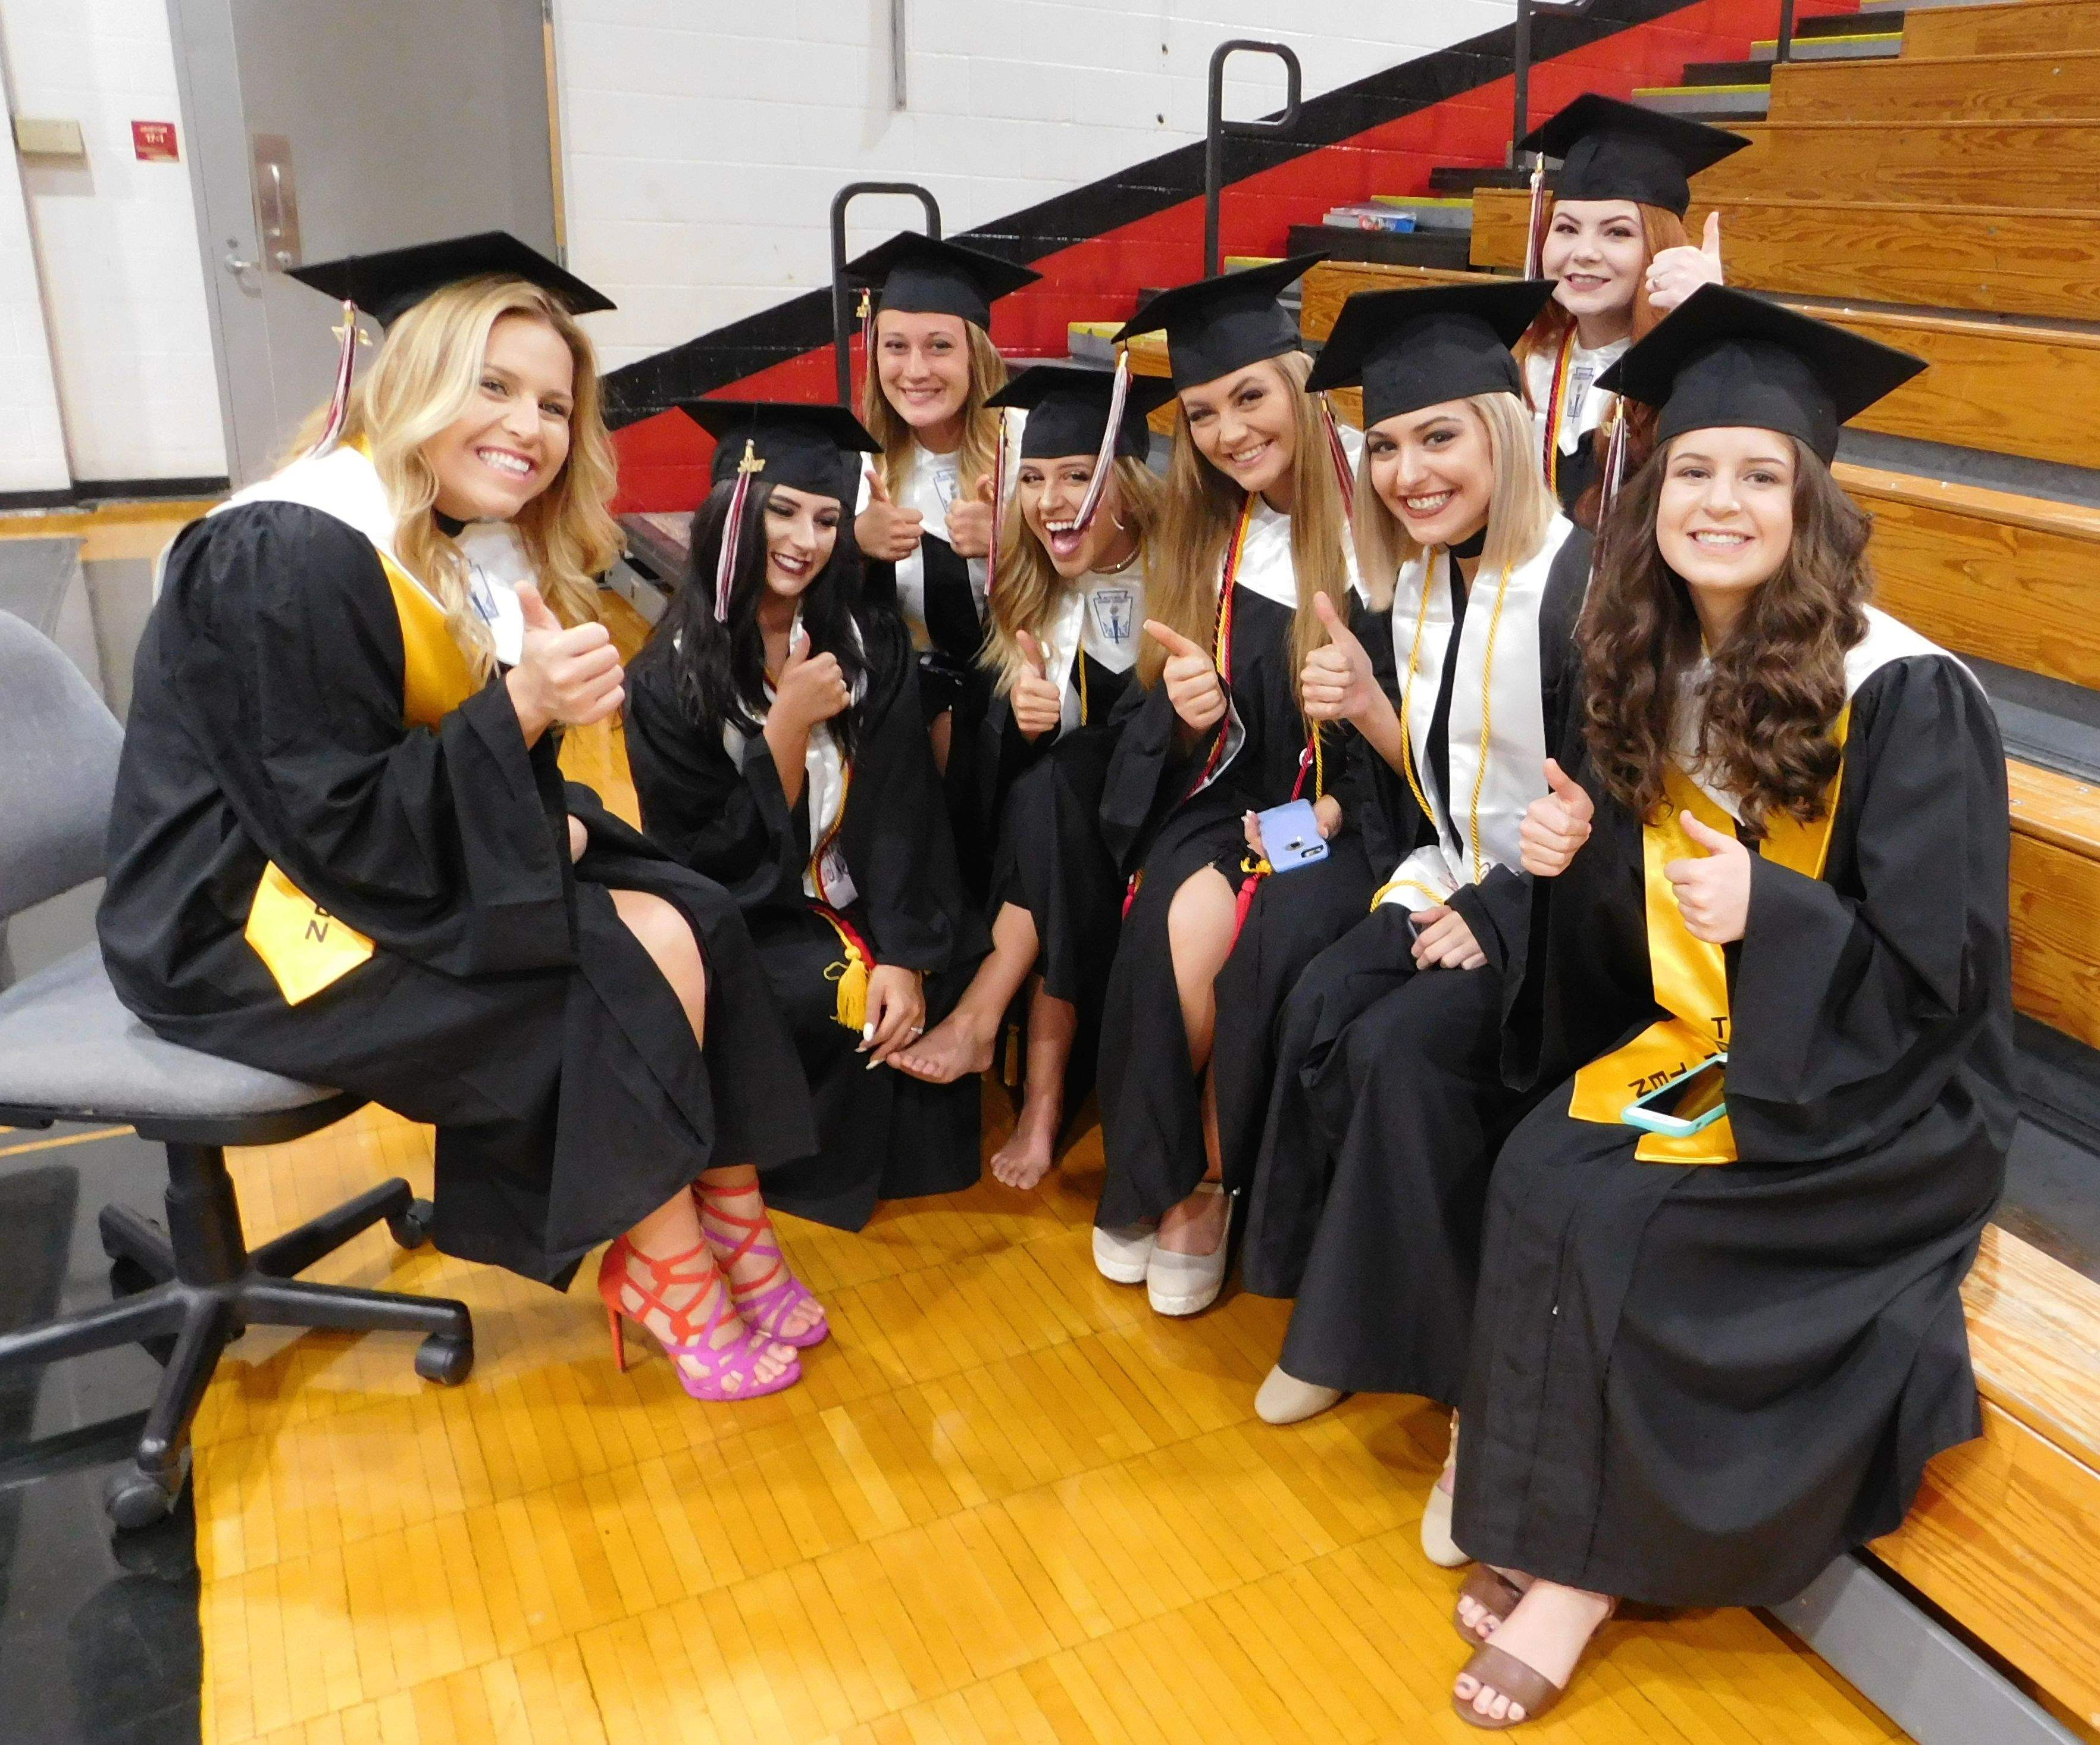 """Maddie Johnson (left) sits with a group of fellow graduates waiting for the ceremony to begin.  The fourth-rank academic standout, Johnson's presence at last night's event was nothing short of a miracle.  She underwent an emergency appendectomy at 11 a.m. yesterday, leaving the hospital just five hours after the surgery was completed.  """"She's one tough kid,"""" wrote her grandmother, Randi Price, on Facebook."""